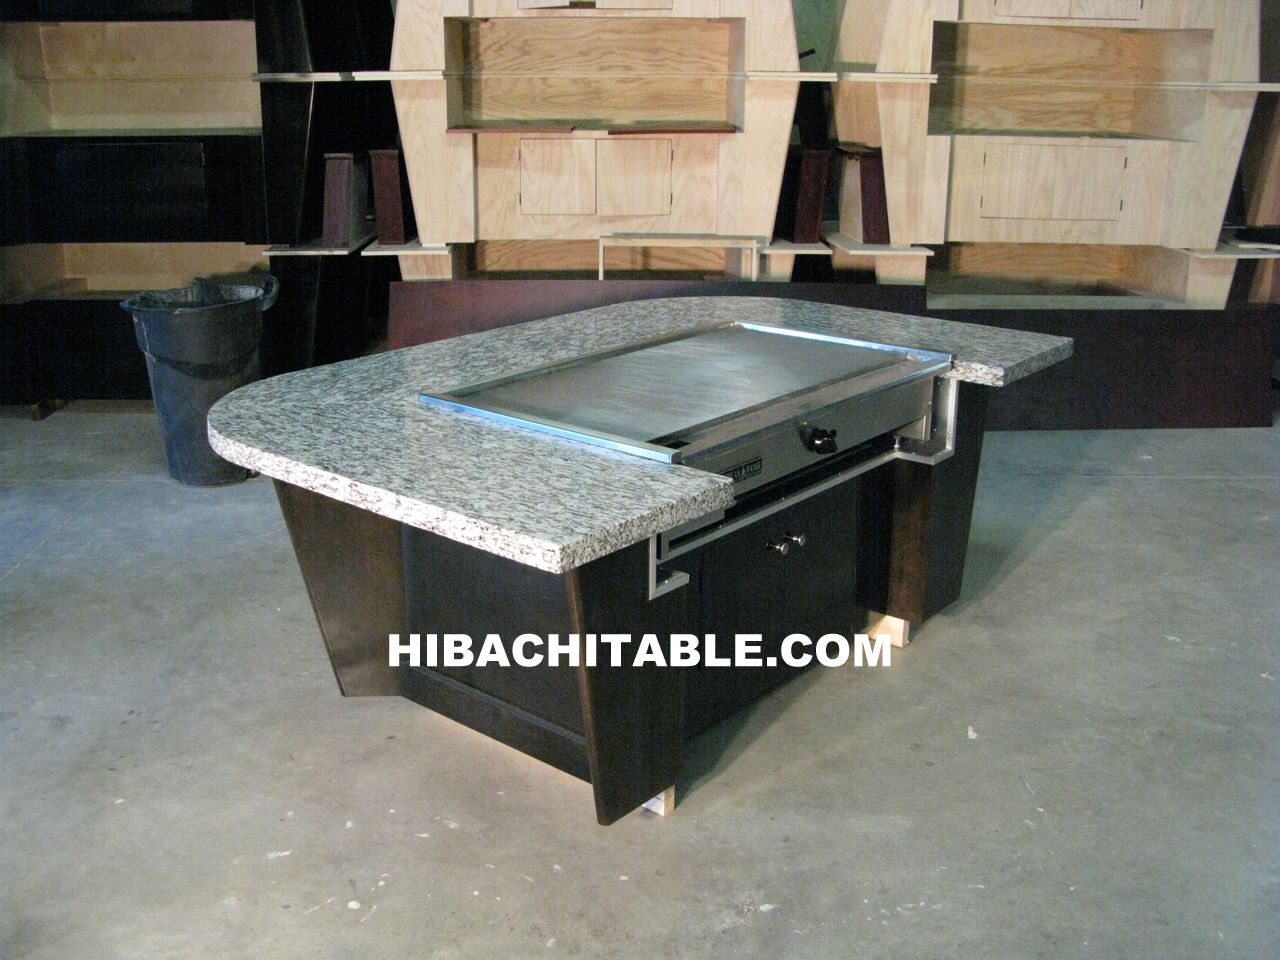 Hibachi Grills For The Home Gallery Hibachi Table Teppanyaki - Teppan table